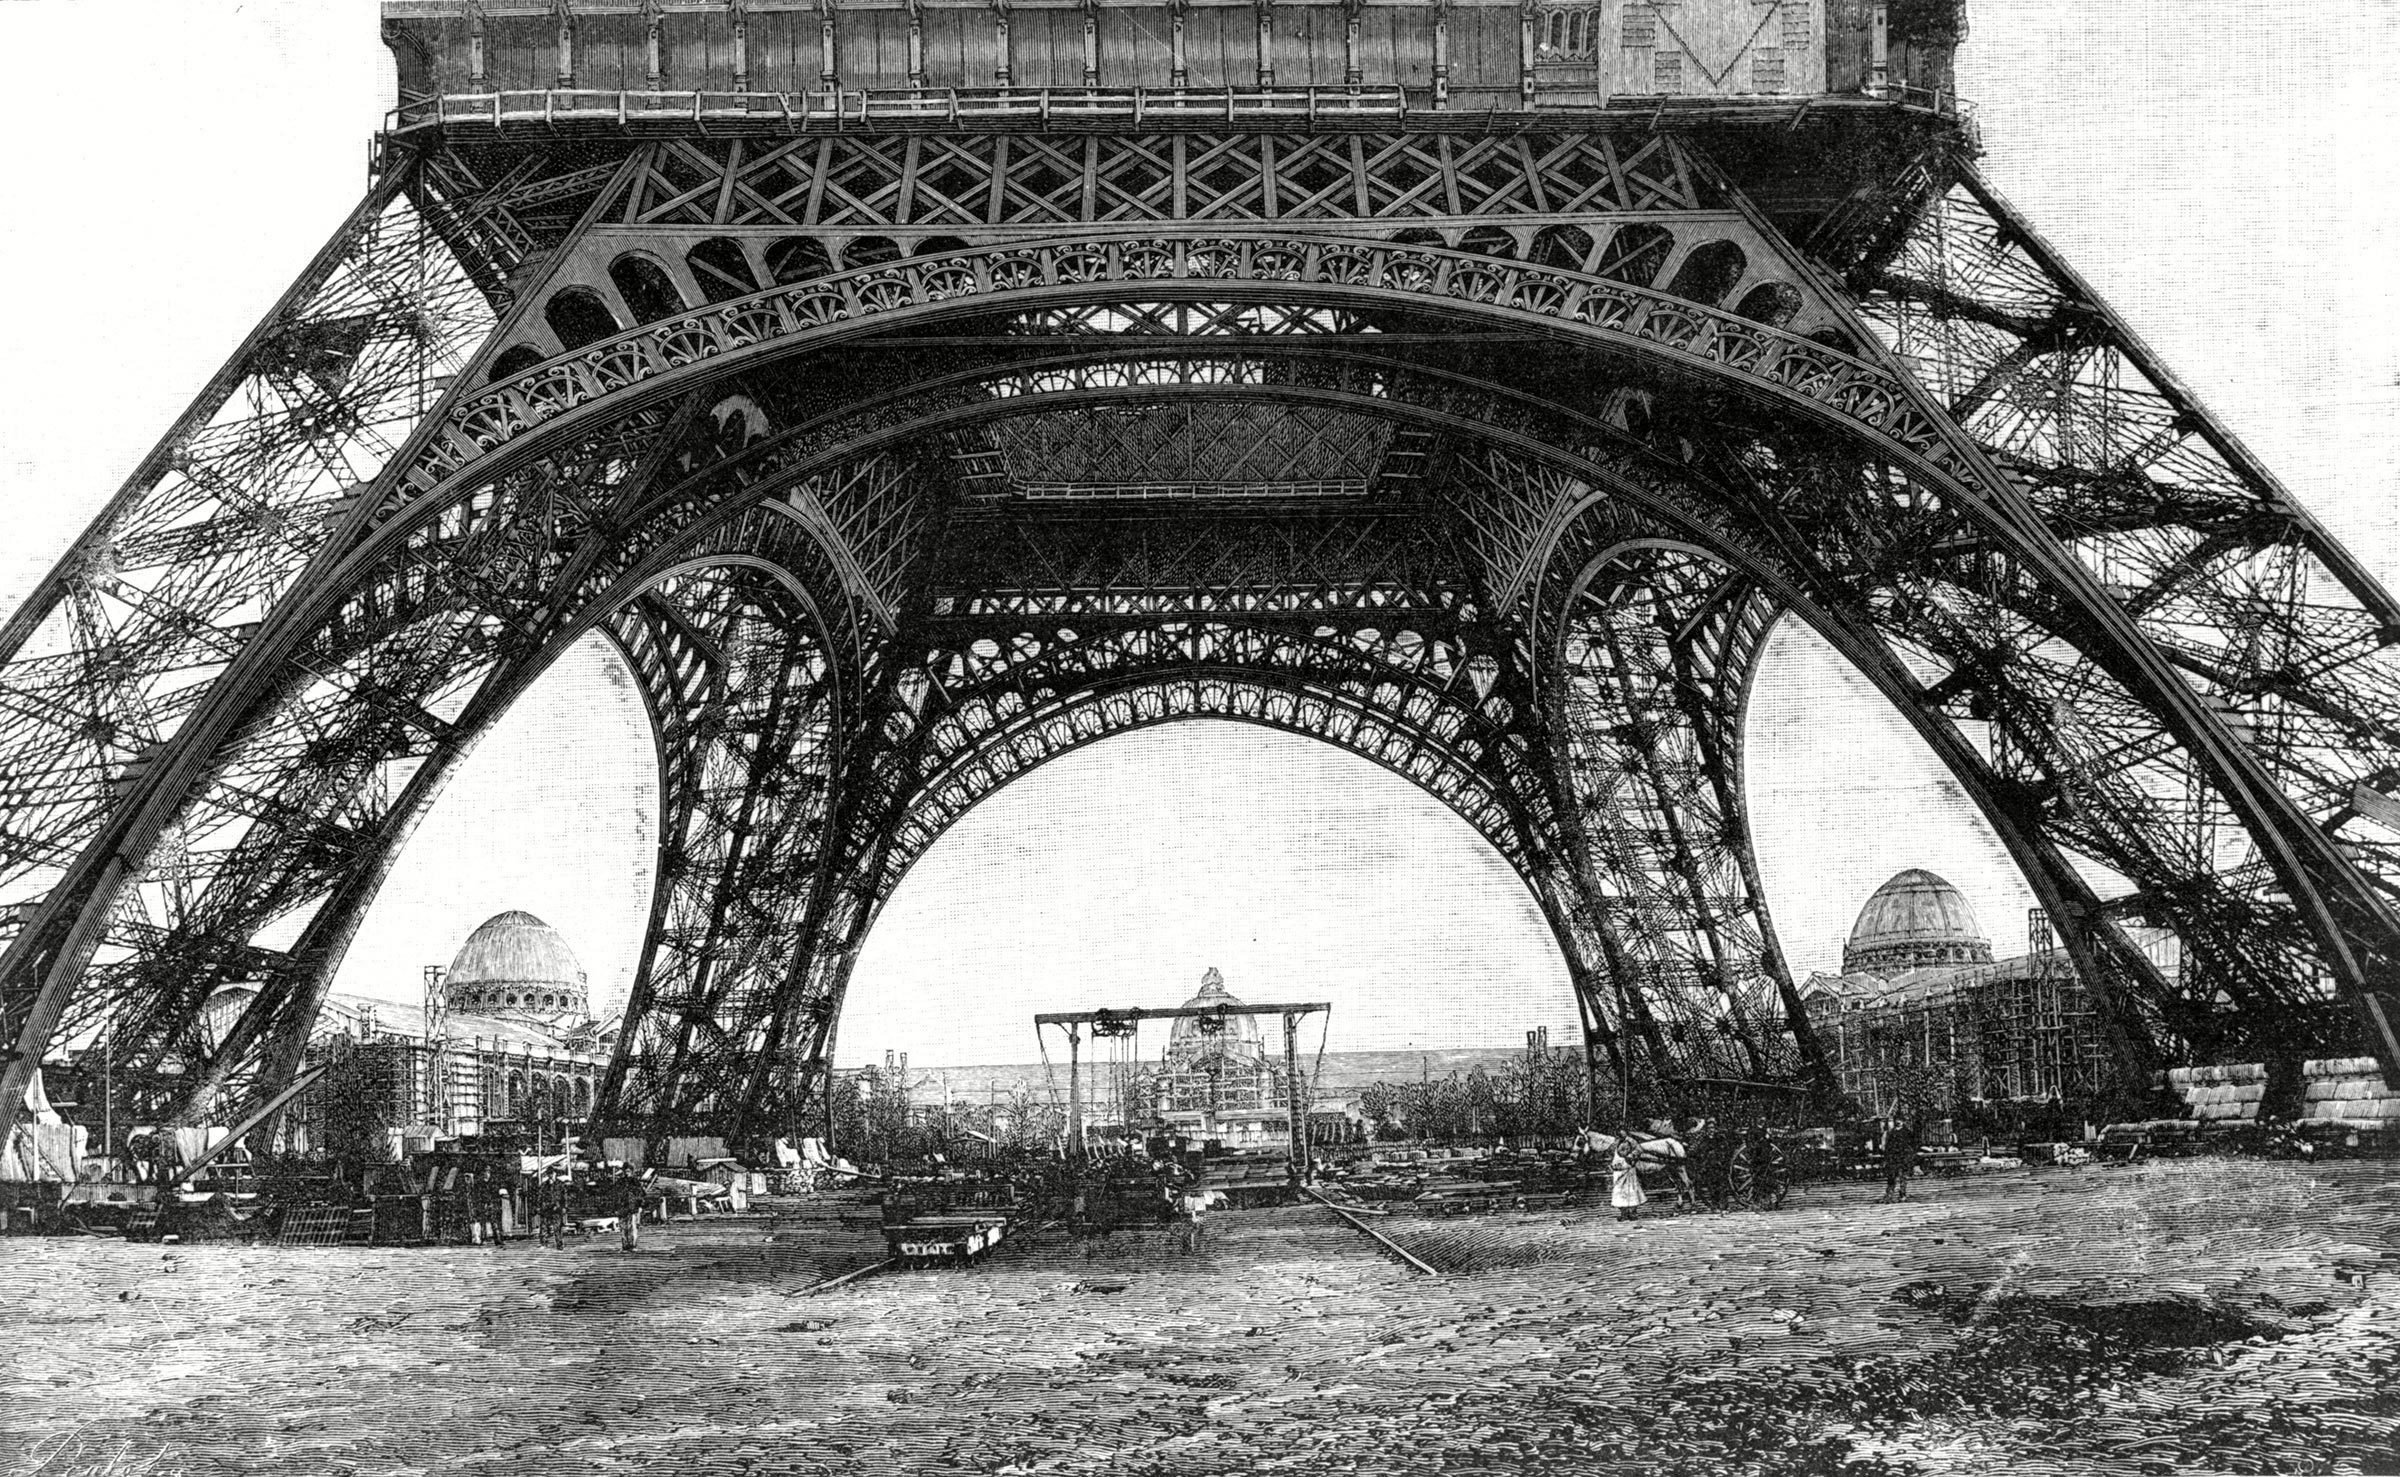 Monument célèbre : construction de la tour Eiffel en France.